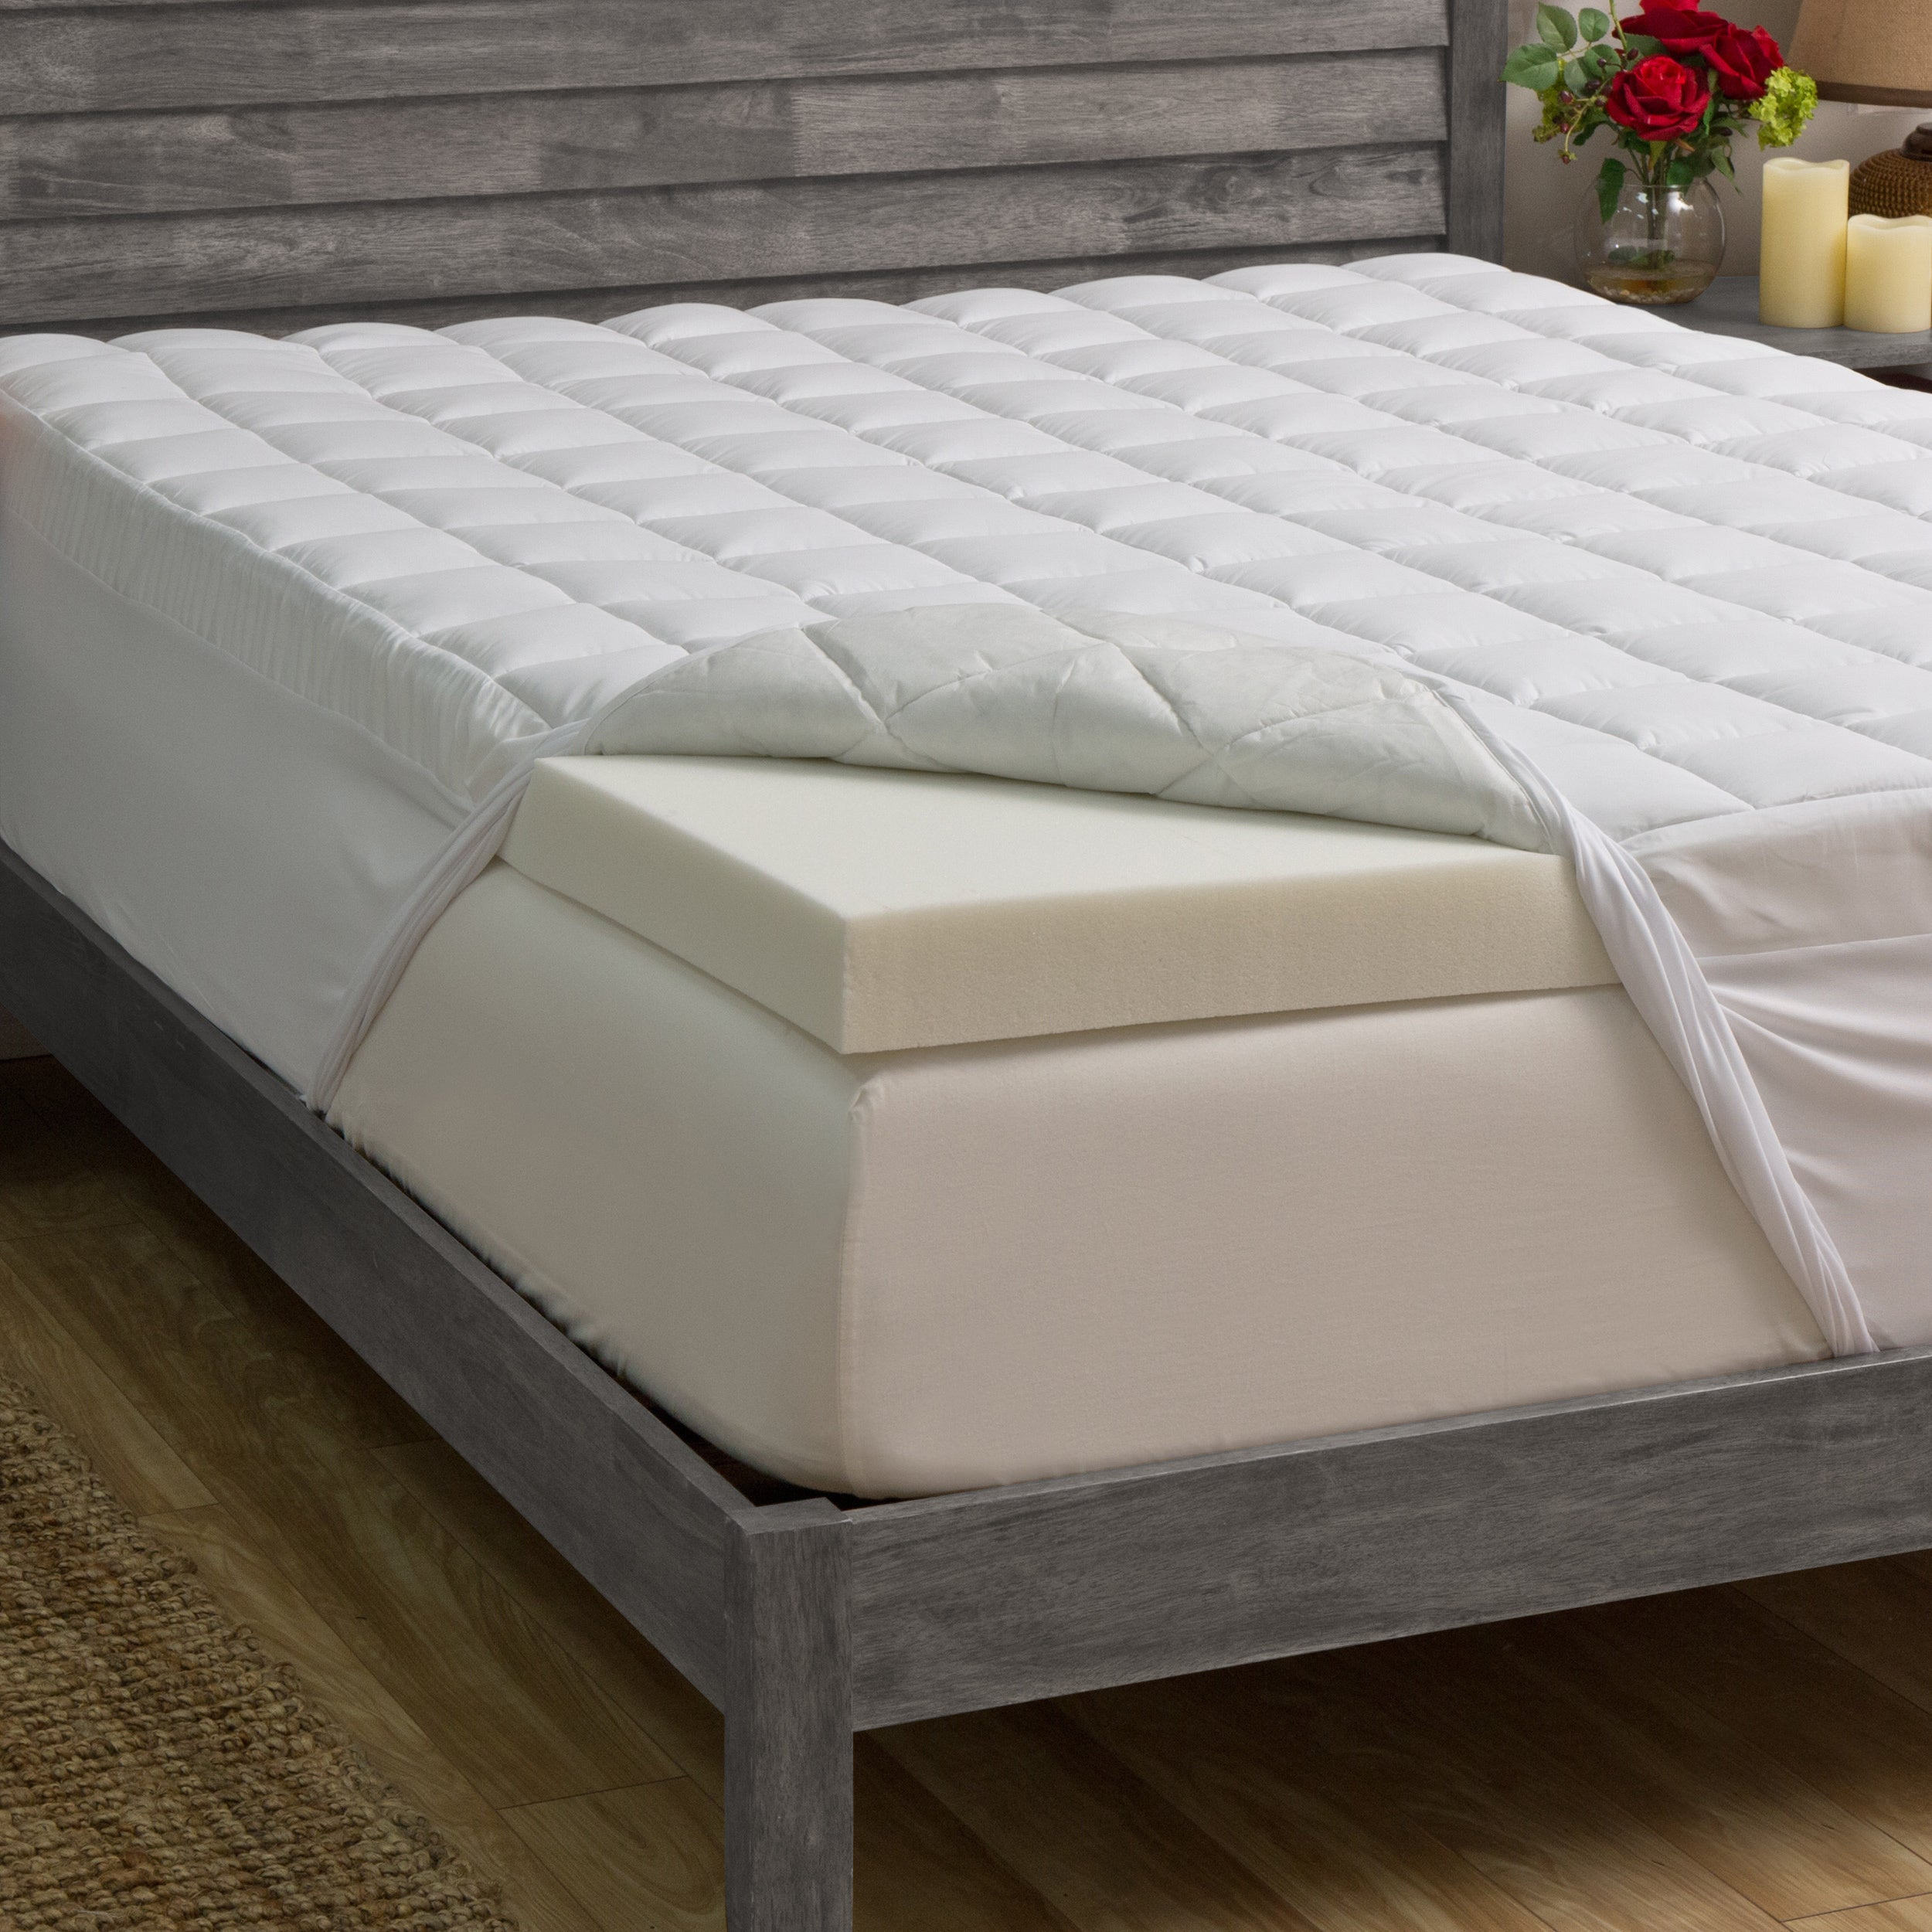 Slumber Solutions 3 inch Memory Foam and 1 5 inch Fiber Mattress